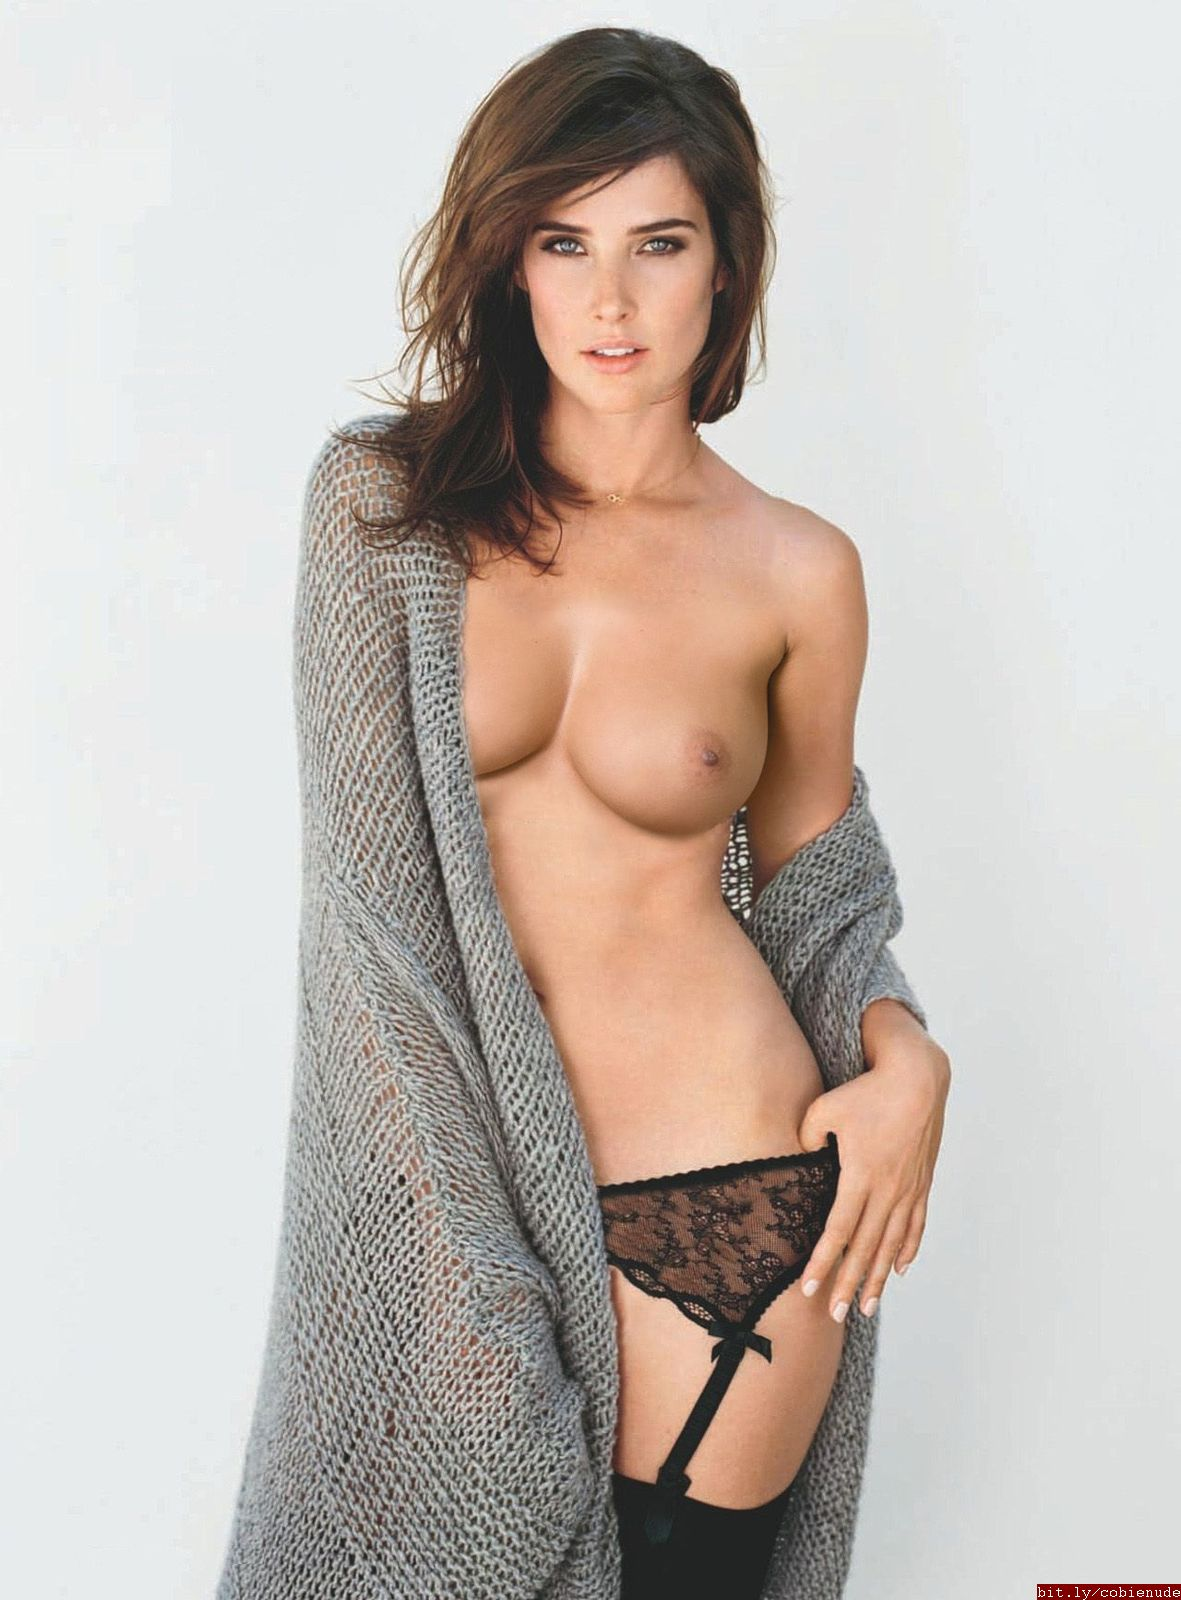 Magnificent Cobie smulders nude vagina agree, this